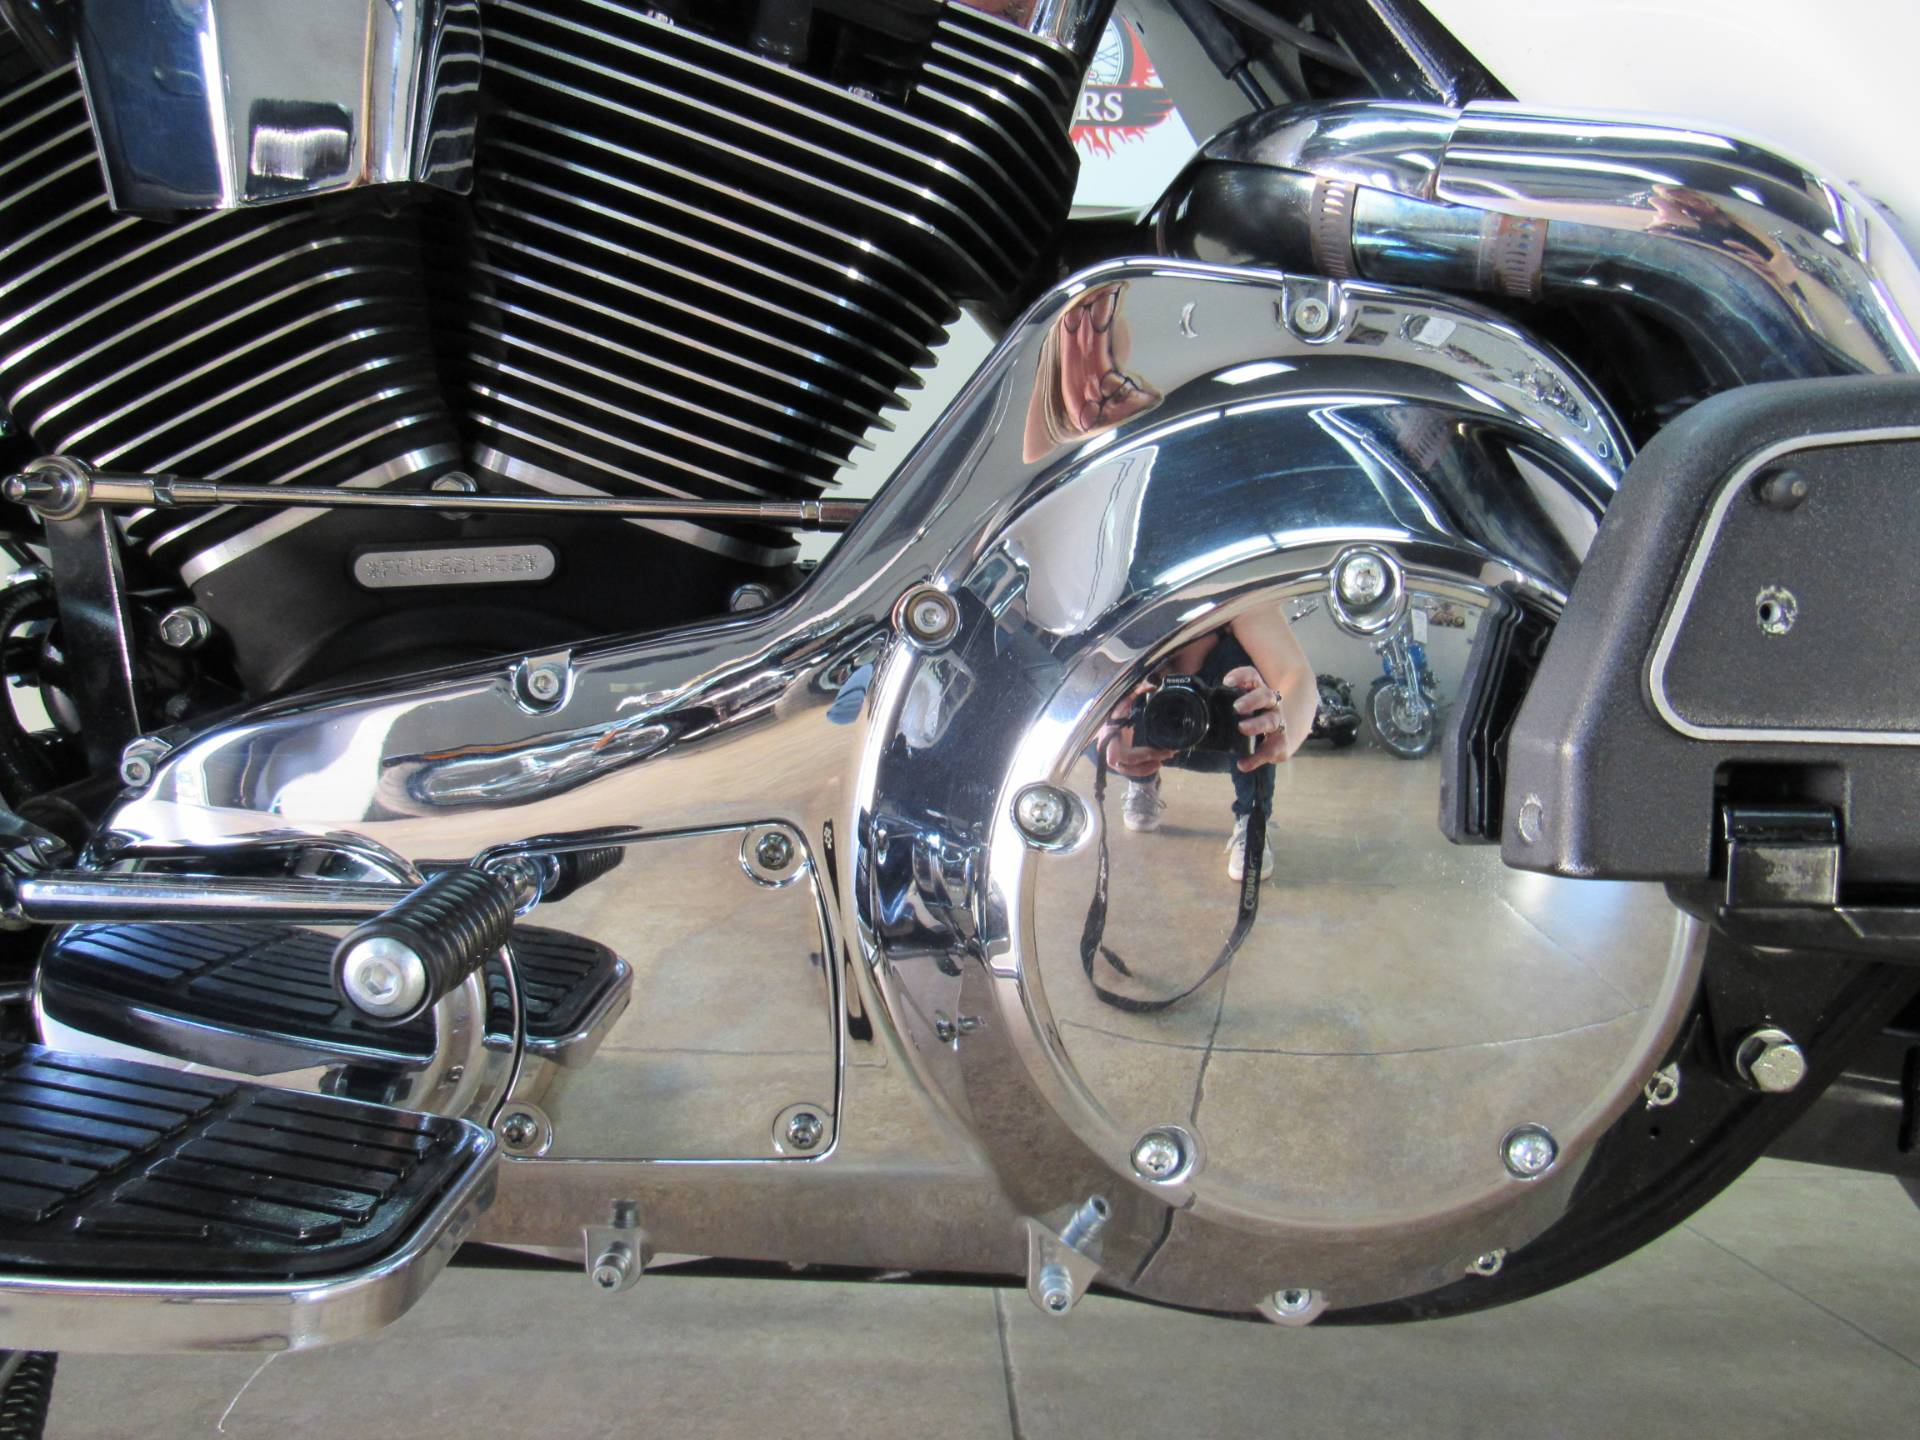 2004 Harley-Davidson FLHTCUI Ultra Classic® Electra Glide® in Temecula, California - Photo 28